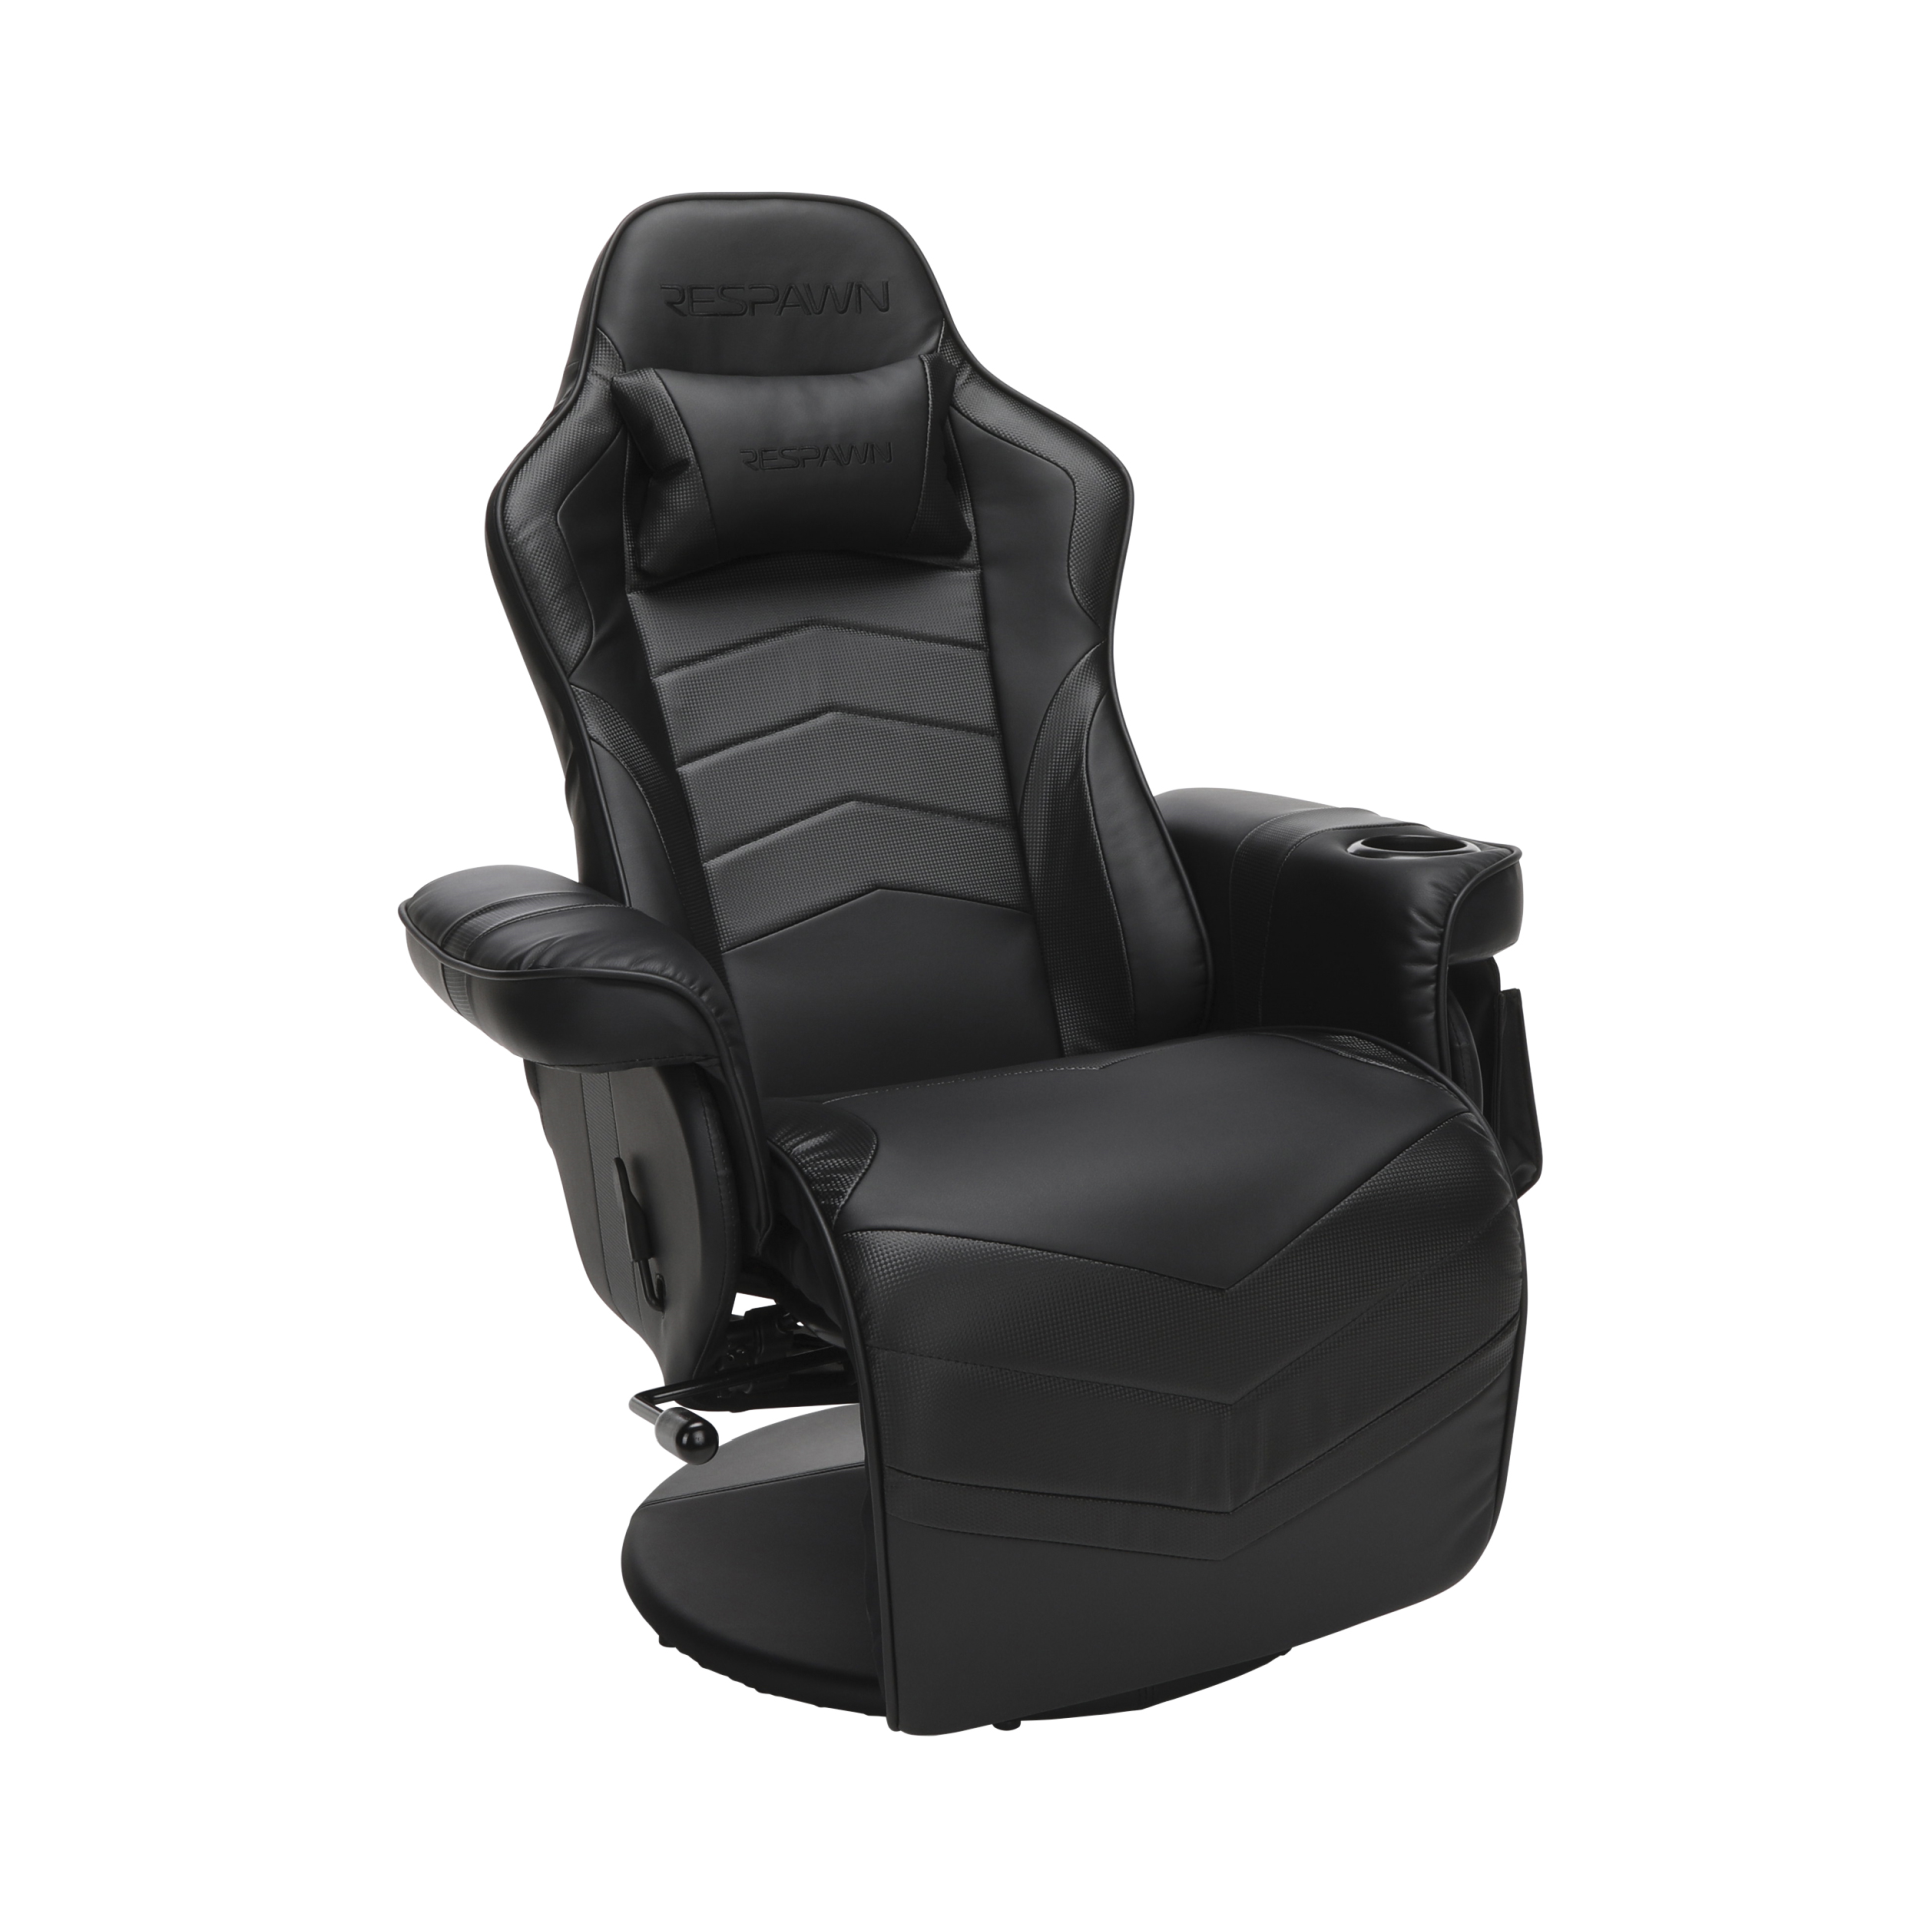 RESPAWN RSP 900 Gaming Chair Review   Ultra Comfy Gaming   PlayStation  LifeStyle